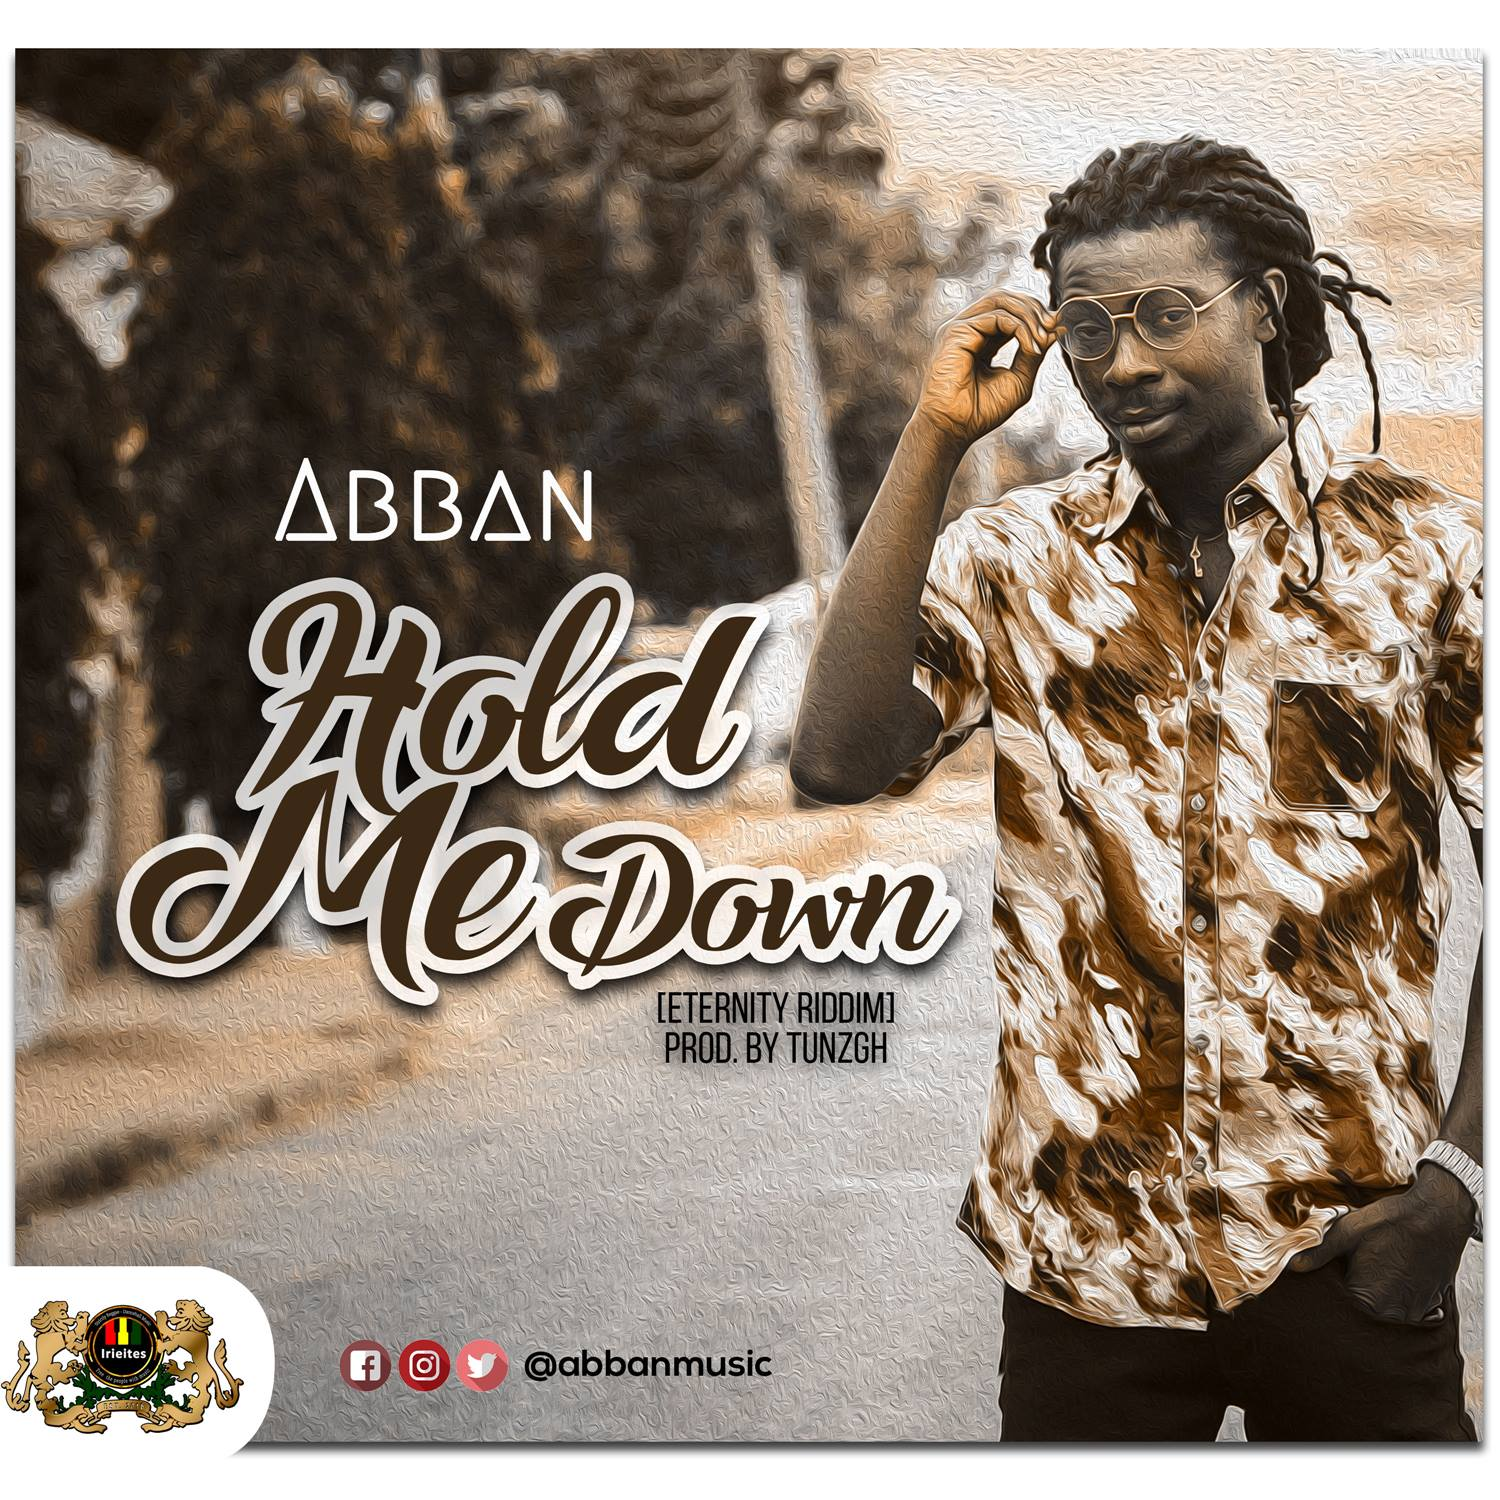 Abban - Hold Me Down (Eternity Riddim) (Prod. by TunzGH)